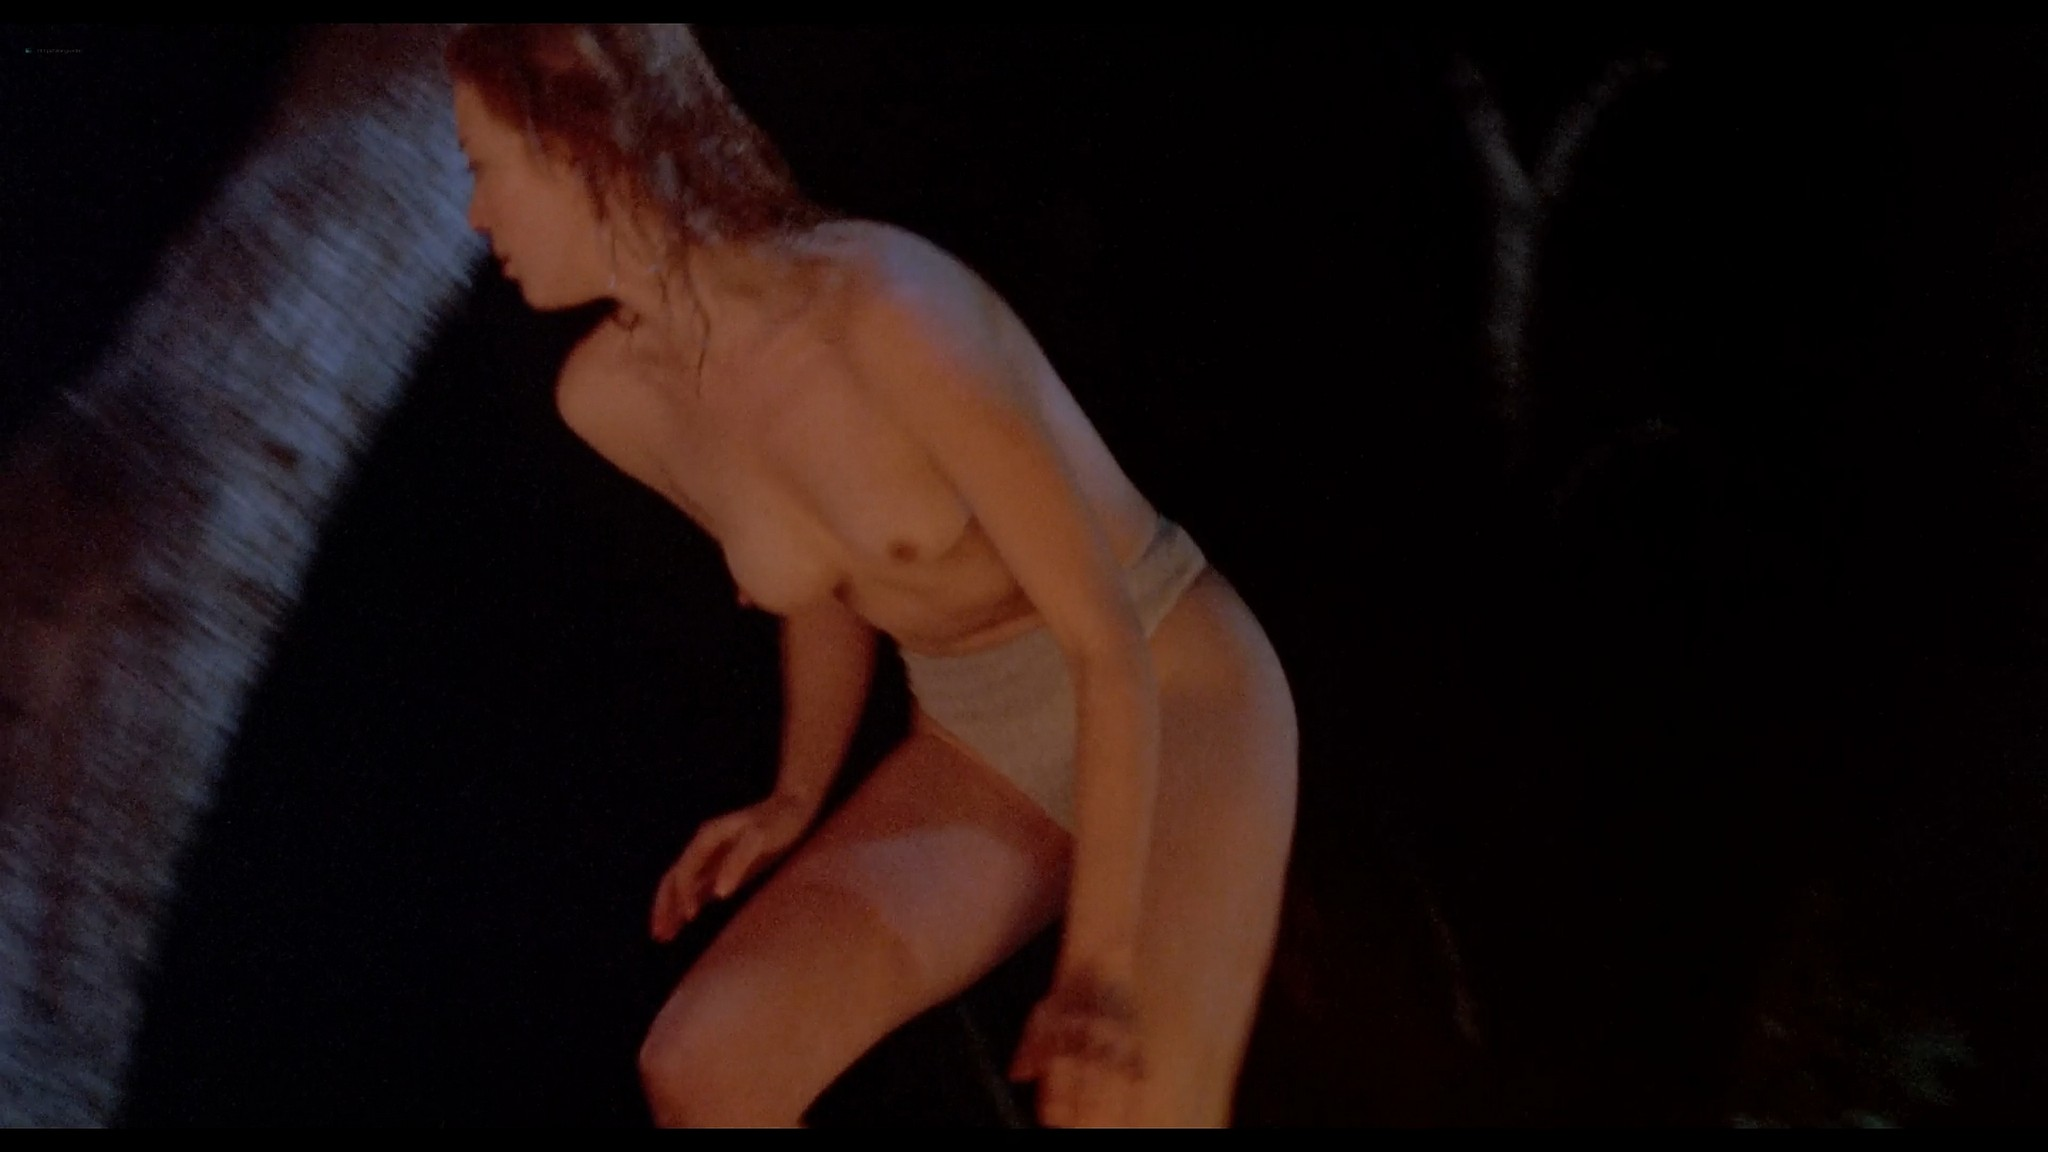 Julie Michaels nude butt and boobs Kathryn Atwood and others nude and sexy Jason Goes to Hell 1993 1080p BluRay 10